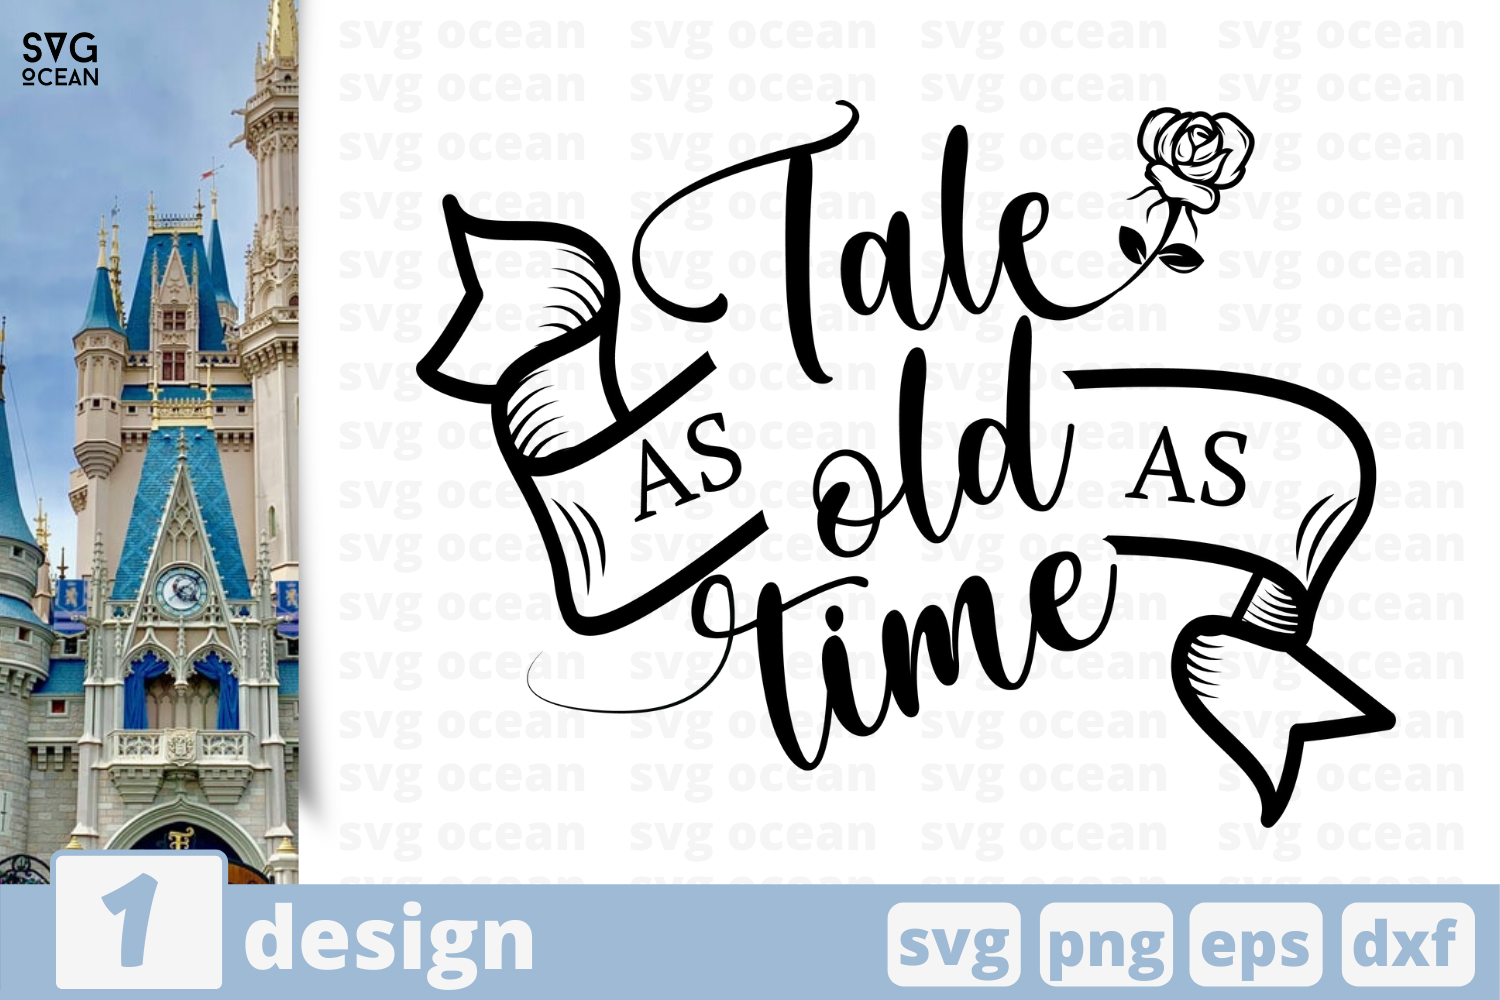 Download Free Tale As Old As Time Graphic By Svgocean Creative Fabrica SVG Cut Files